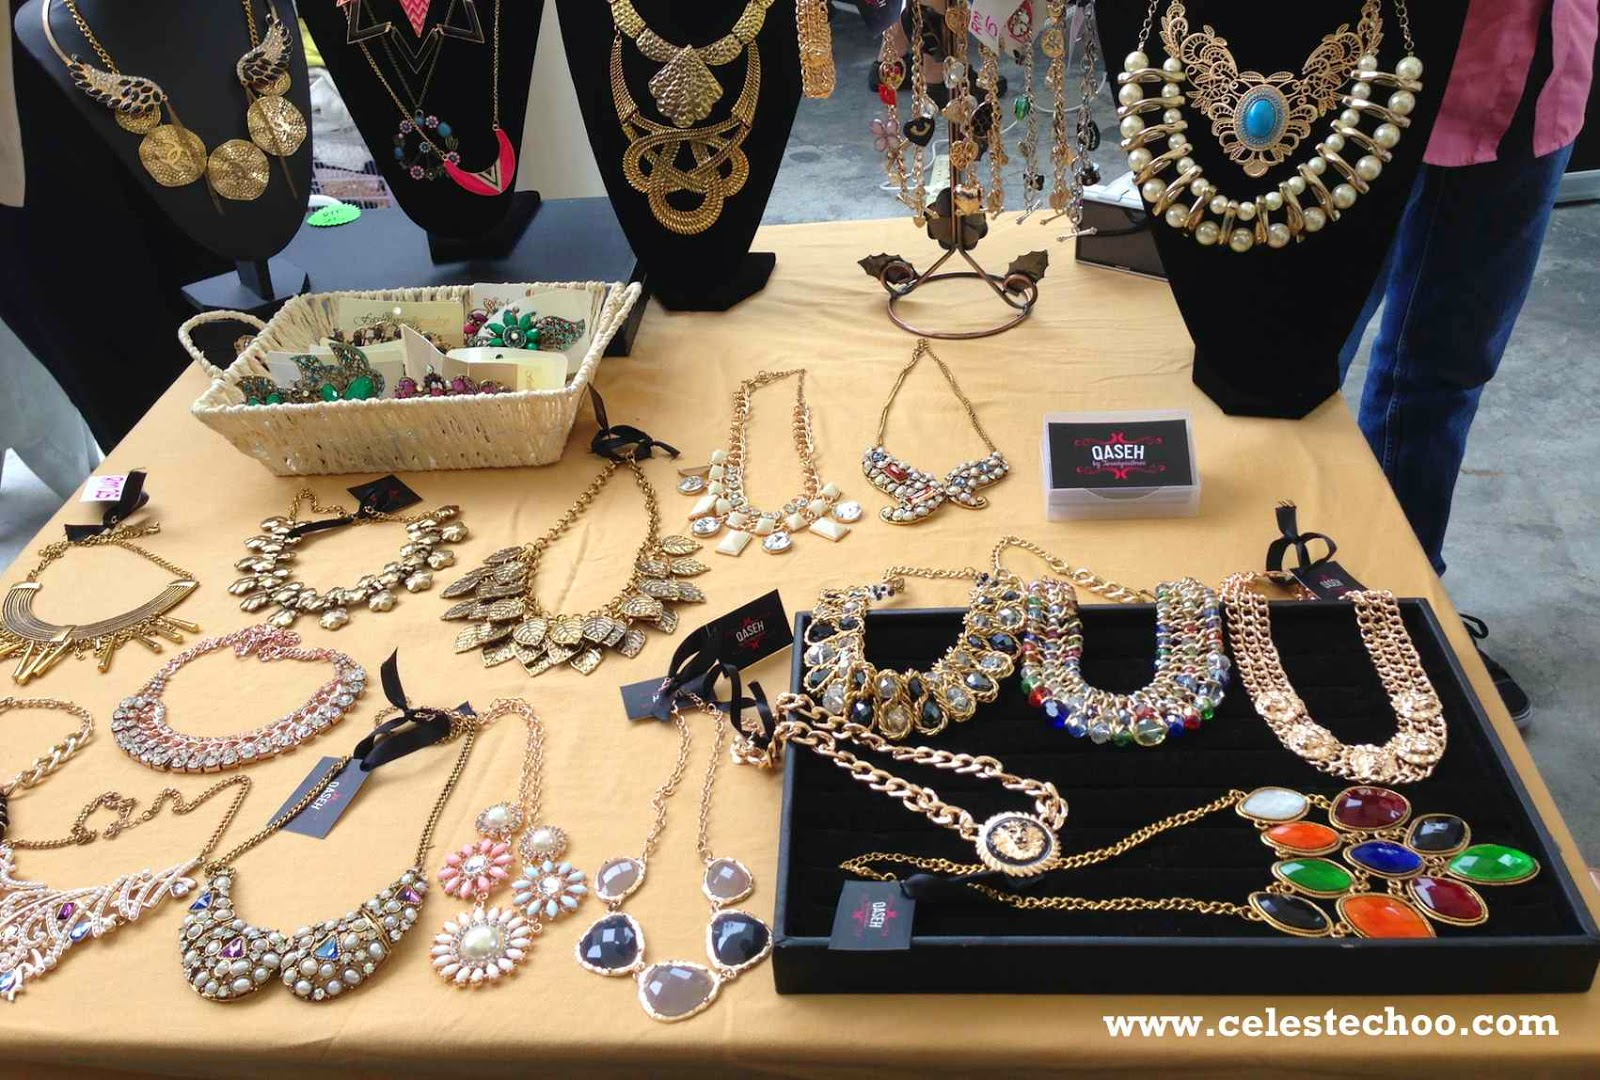 duriana_fashion_sale_shopping_event_accessories